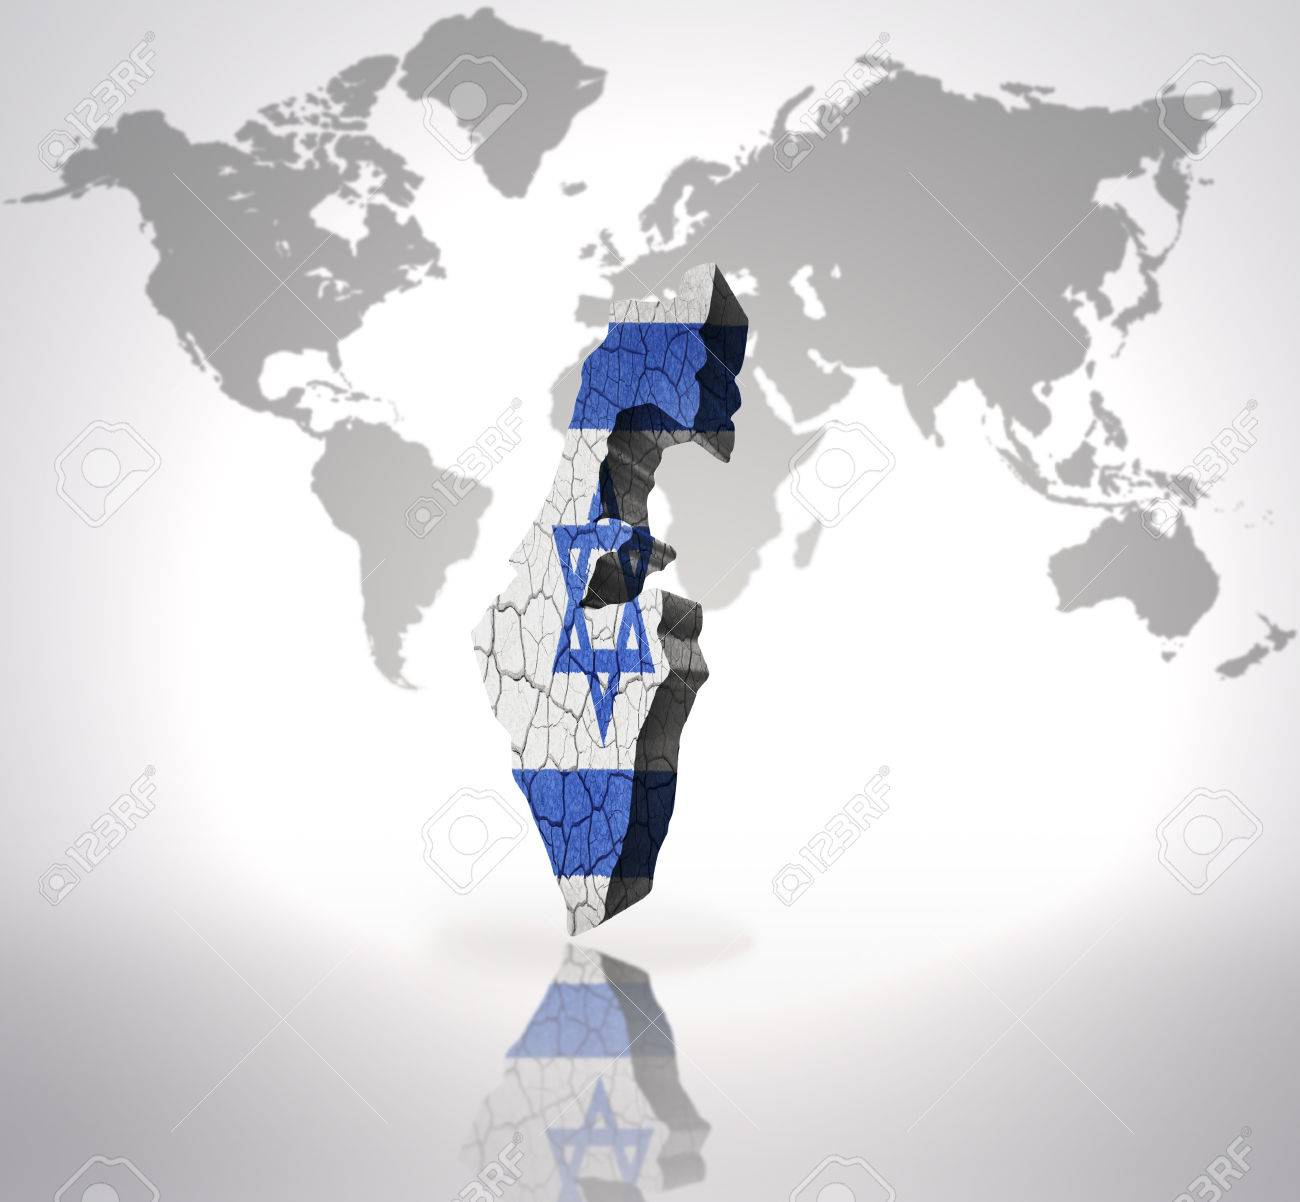 Map Of Israel With Israeli Flag On A World Map Background Stock - Israel world map